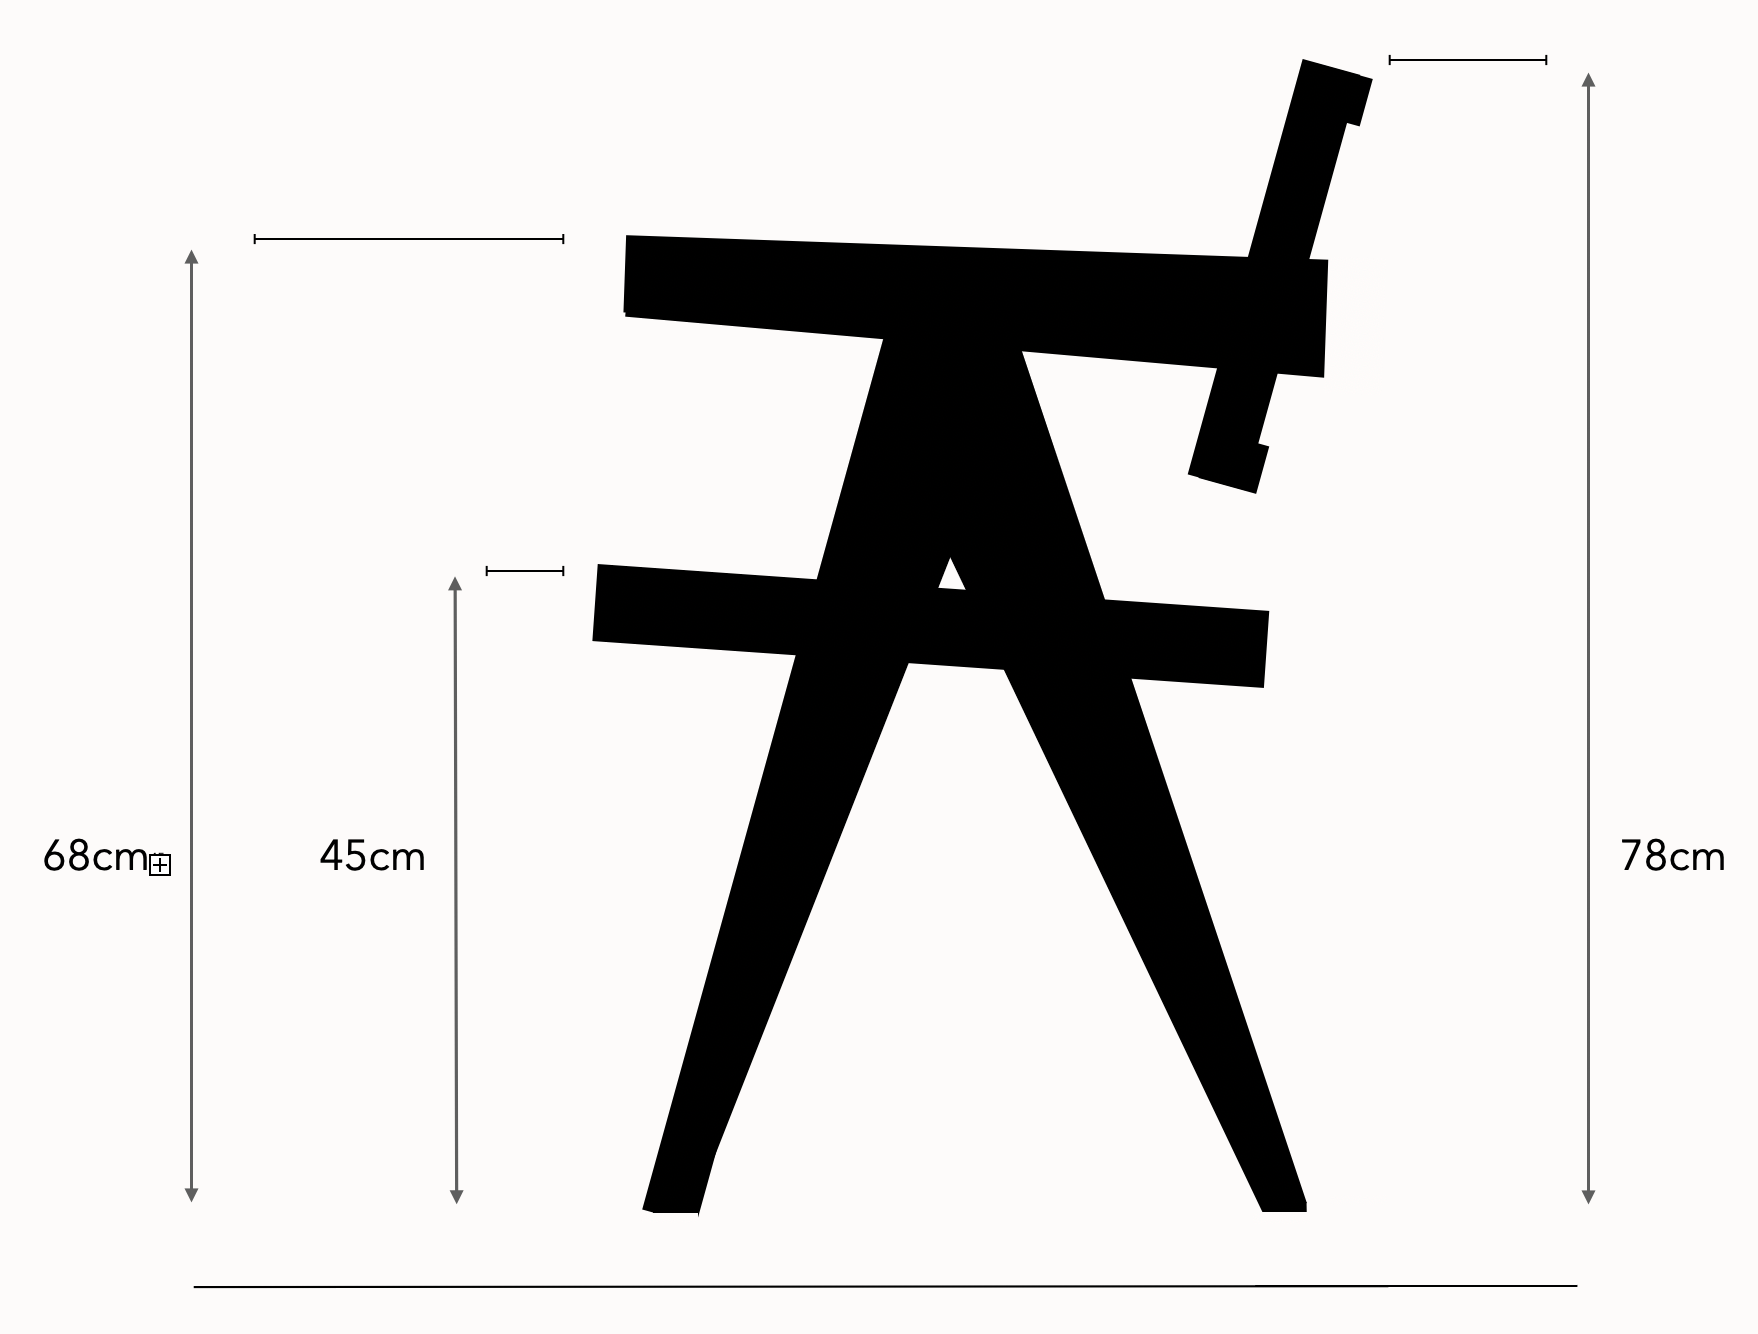 Pierre Jeanneret chair sizing